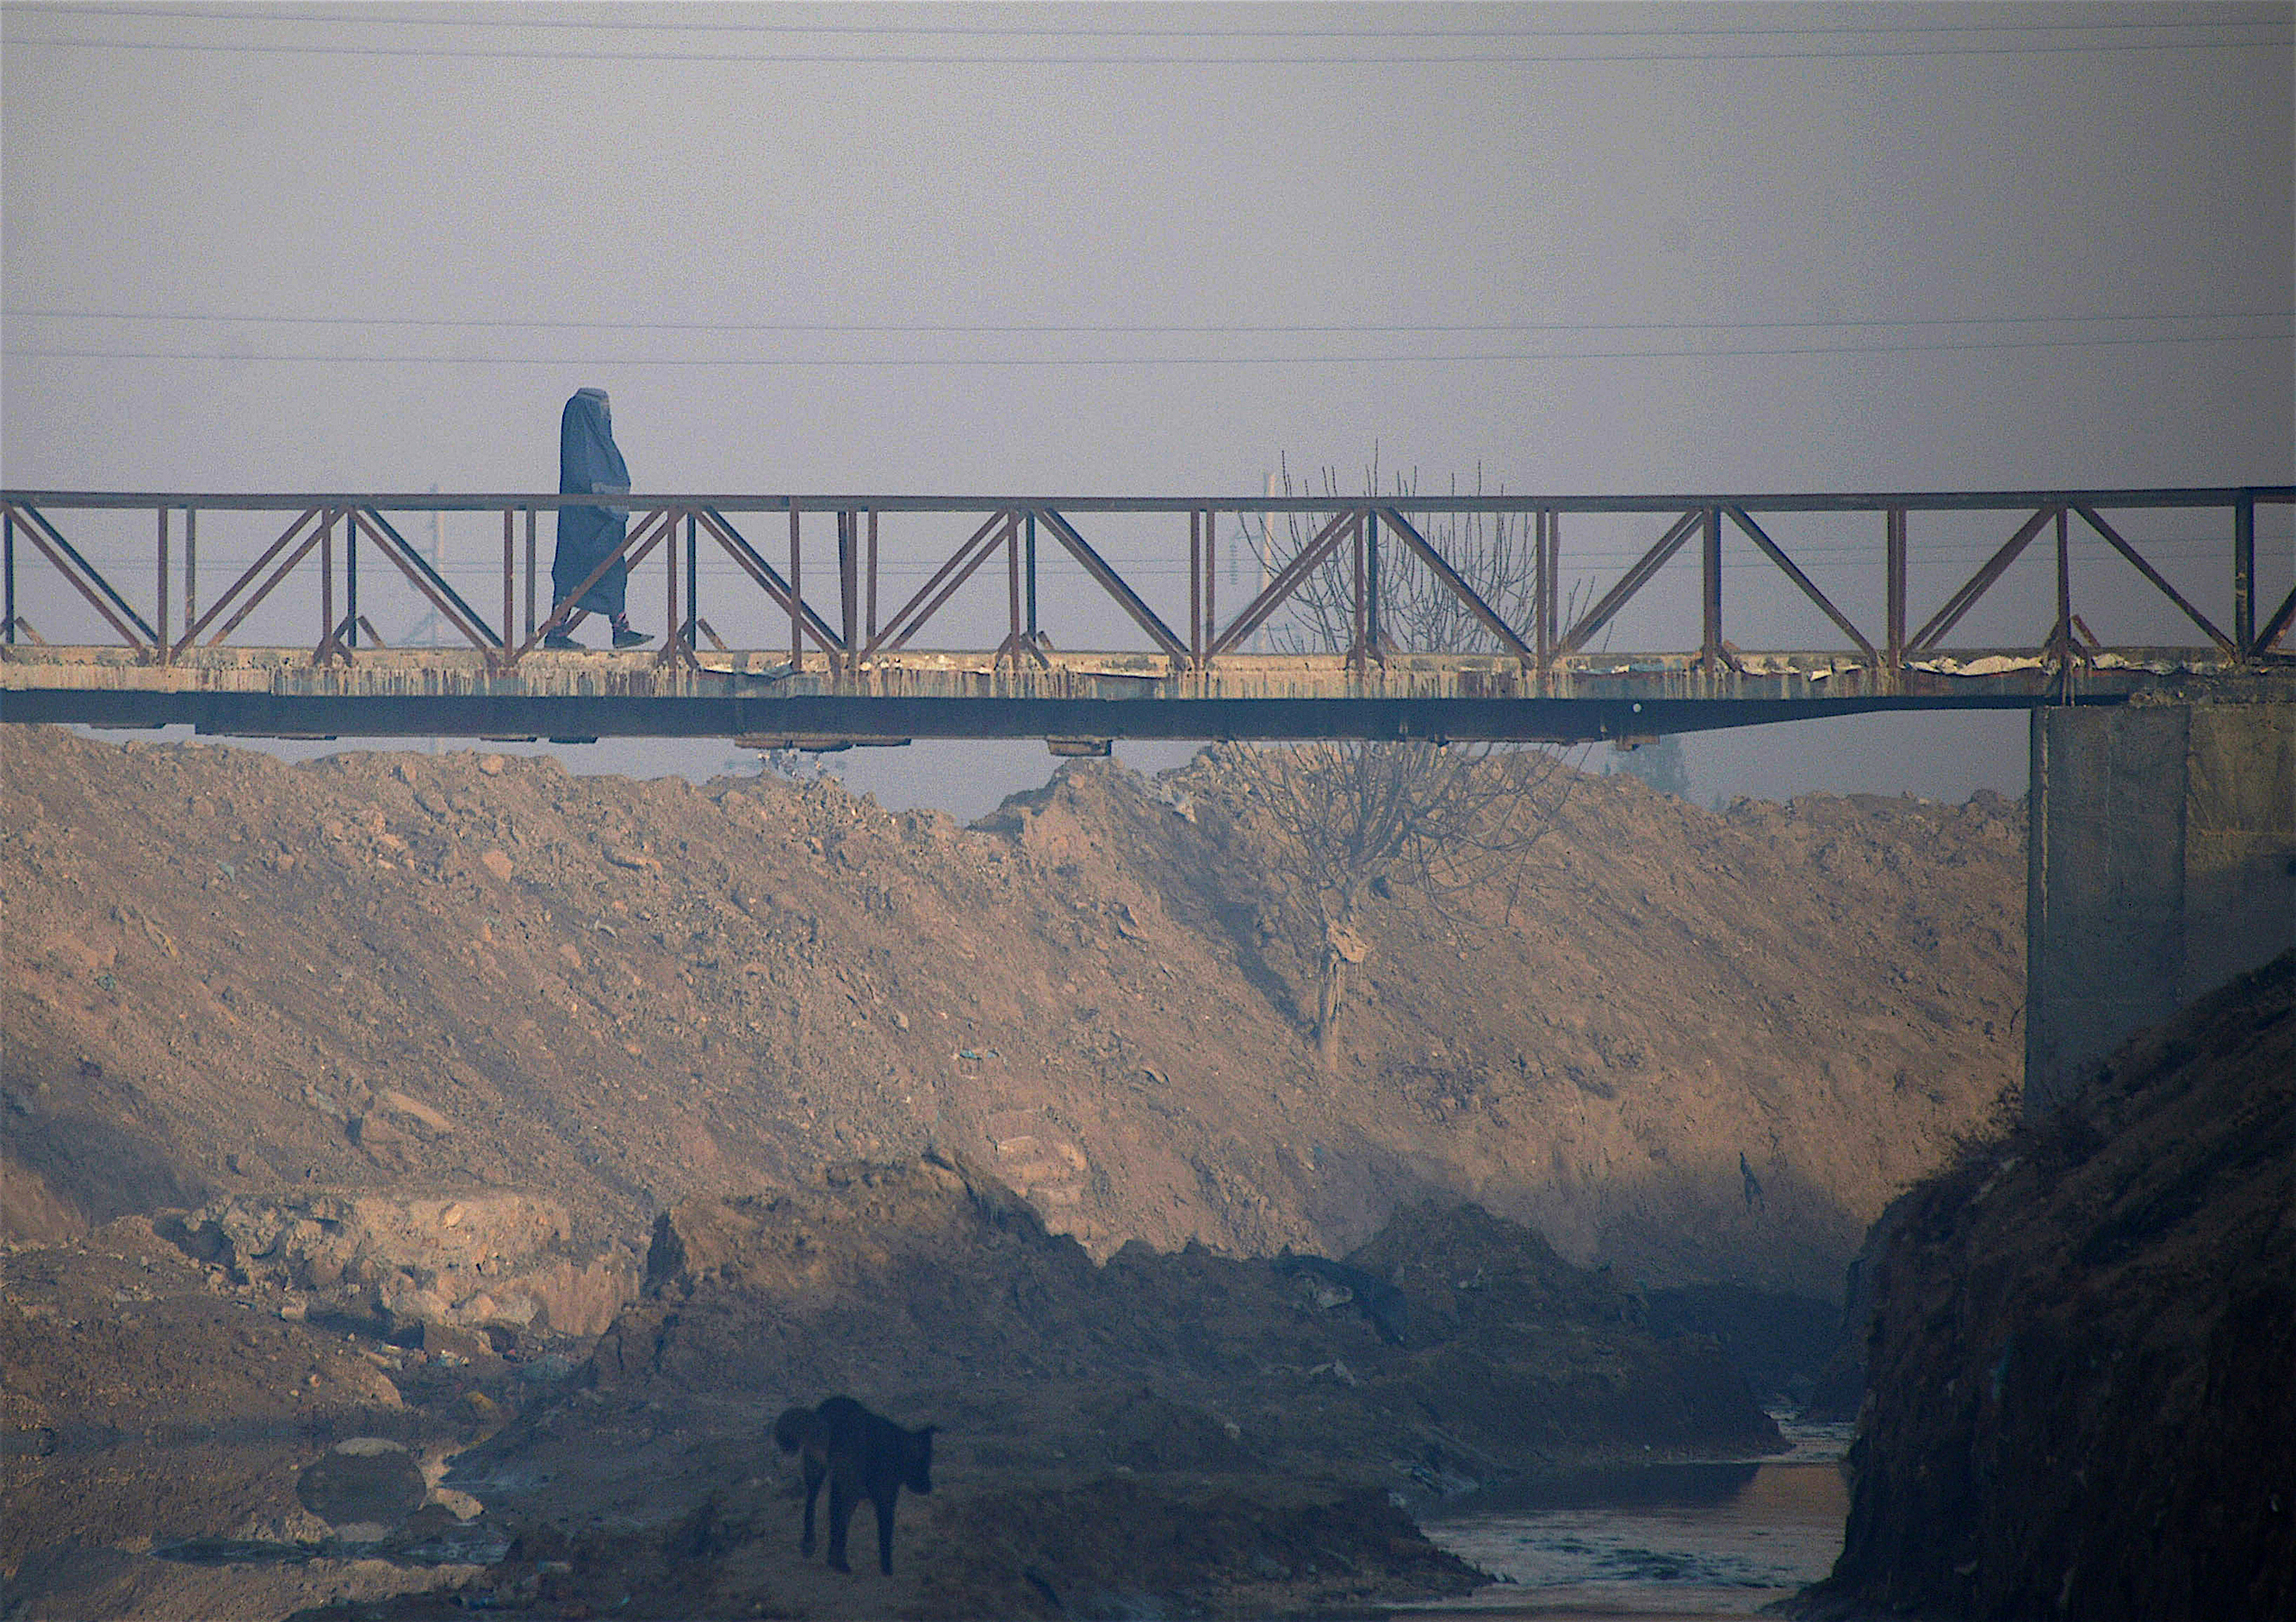 An Afghan woman crosses a bridge in Mazar-i-Sharif on December 3. Mazar-i-Sharif serves as a terminus of a railway connecting Afghanistan and Uzbekistan. [Farshad Usyan/AFP]